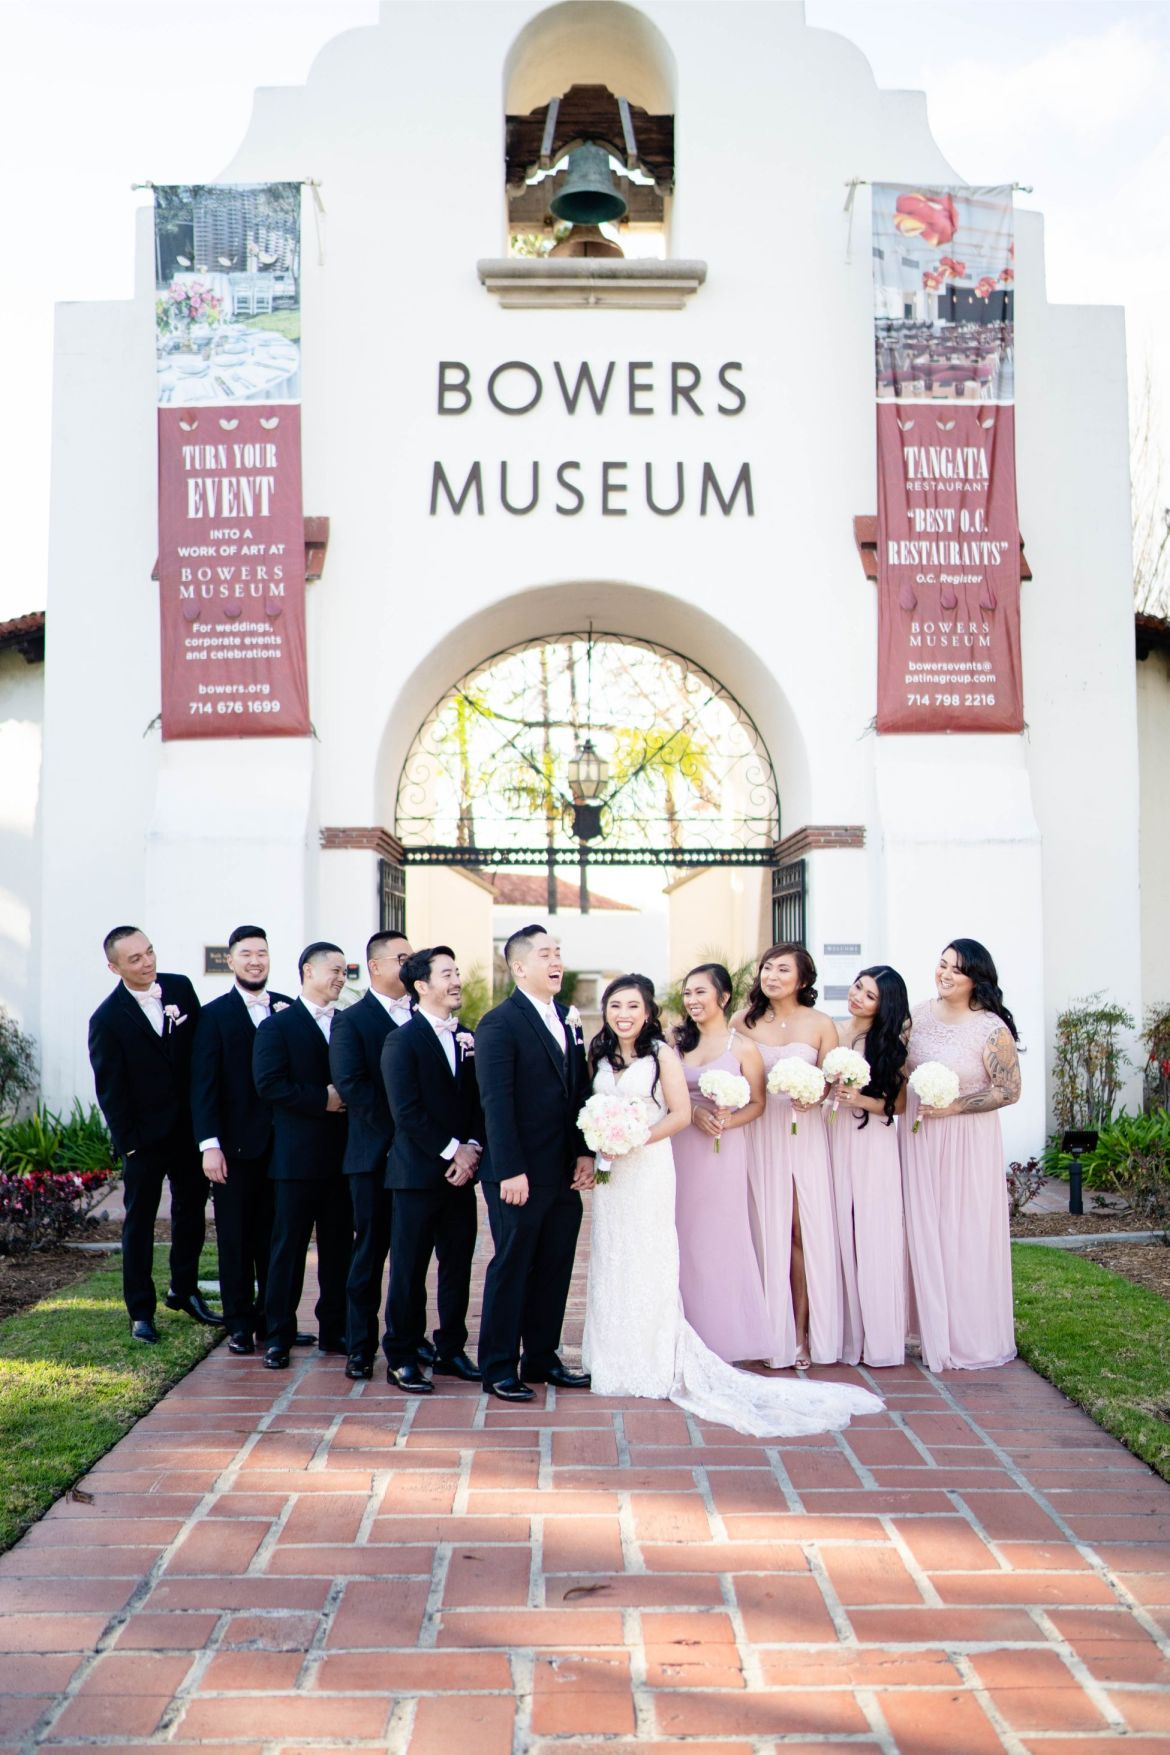 13 bowers museum